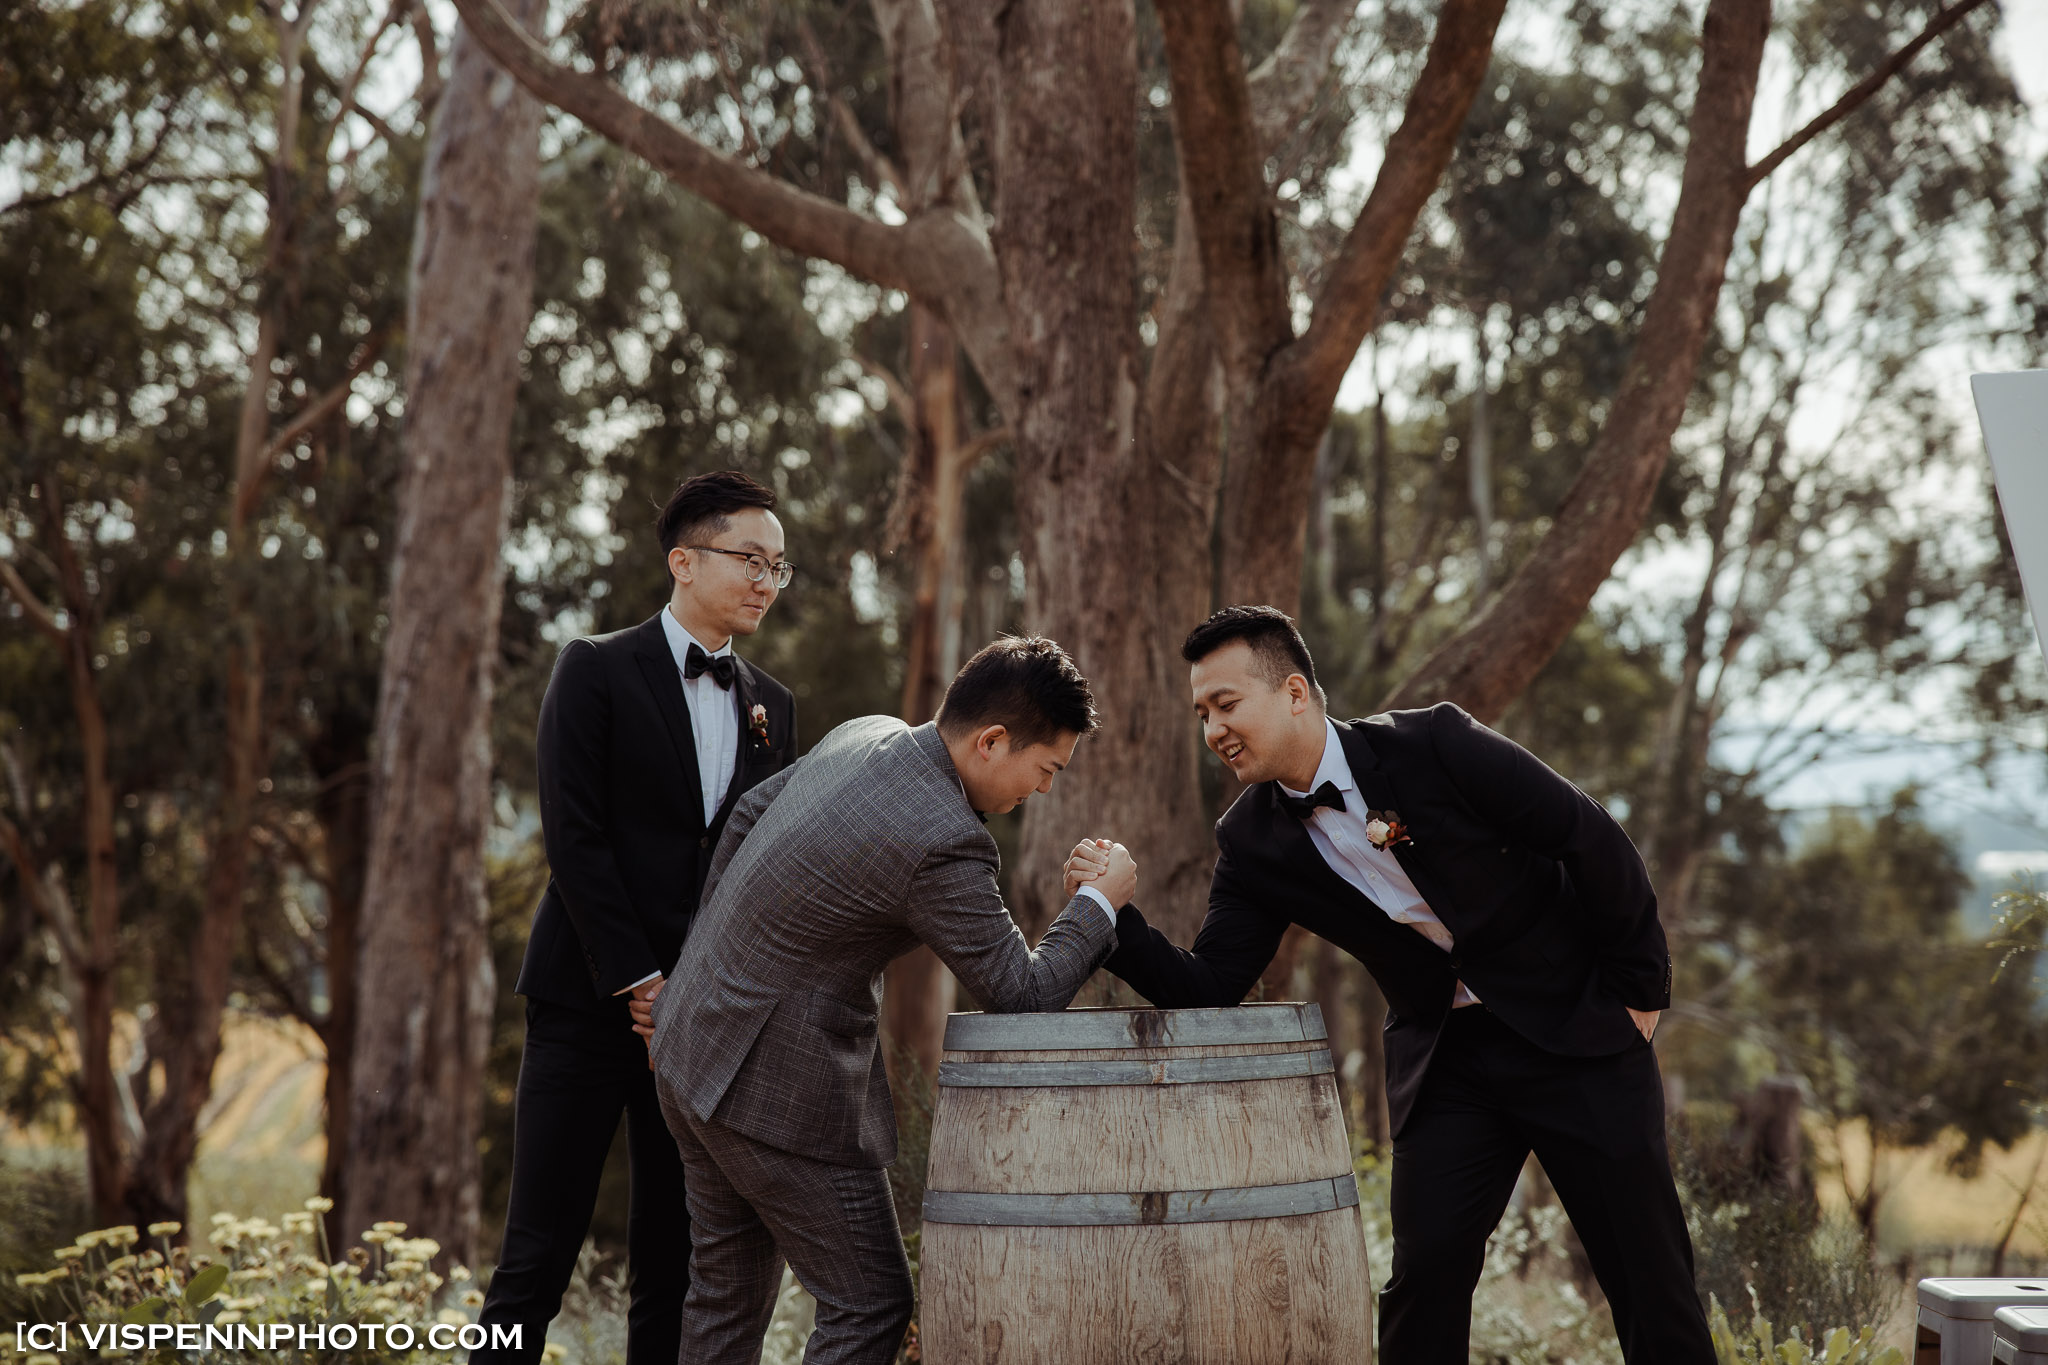 WEDDING DAY Photography Melbourne VISPENN 墨尔本 婚礼跟拍 婚礼摄像 婚礼摄影 结婚照 登记照 DominicHelen 1P 1996 EOSR VISPENN